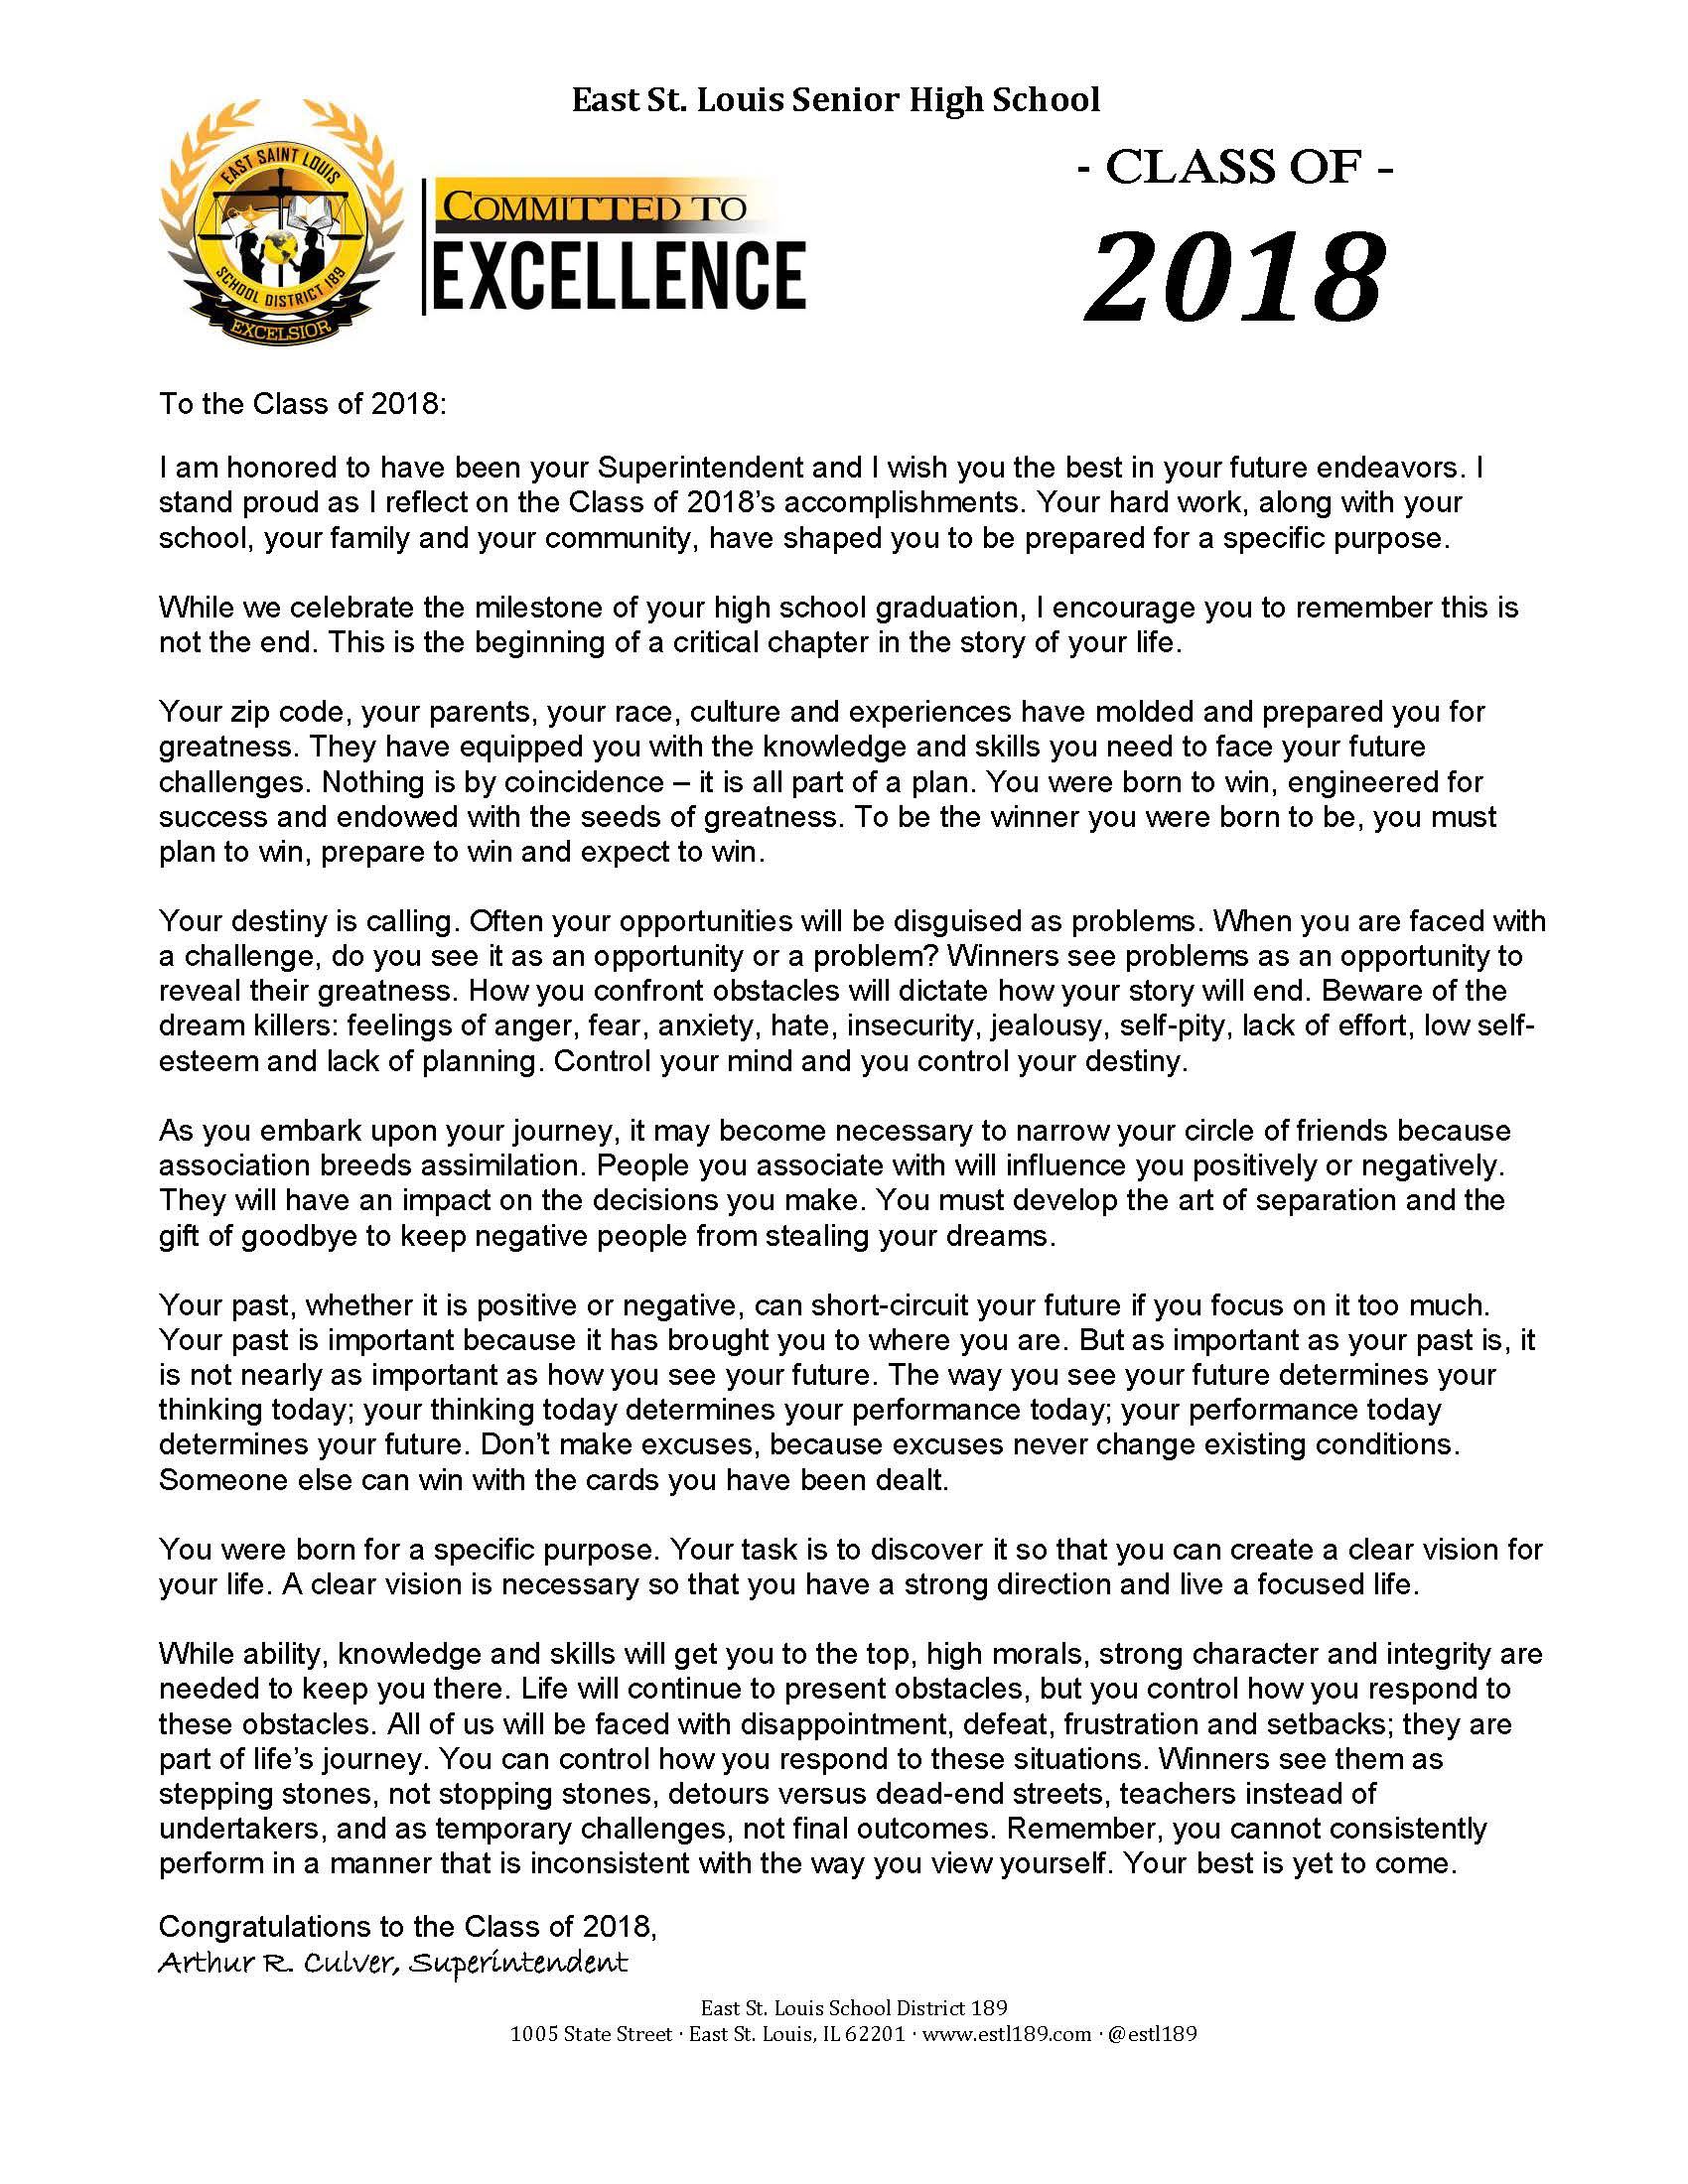 Graduation Message to Class of 2018